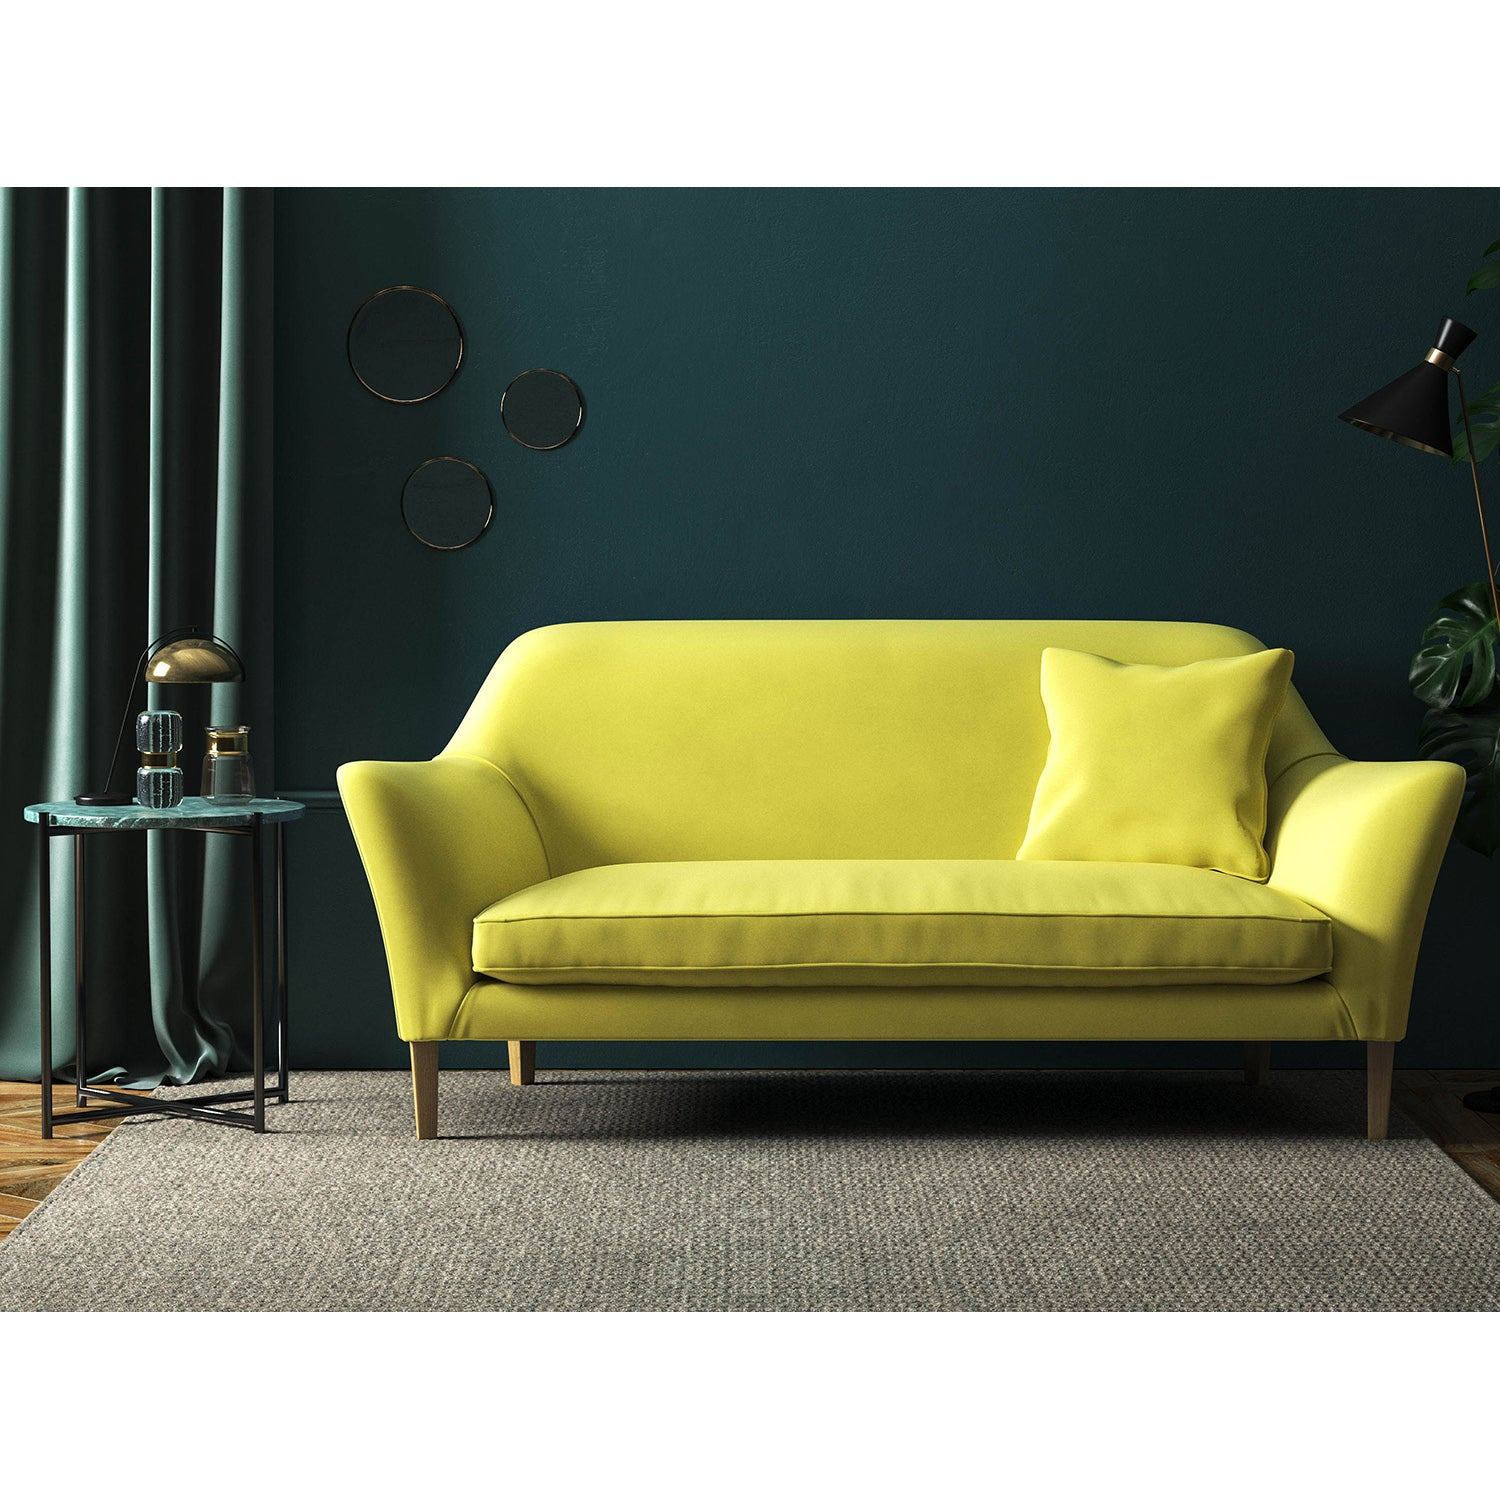 Sofa in a bright yellow velvet upholstery fabric with a stain resist finish